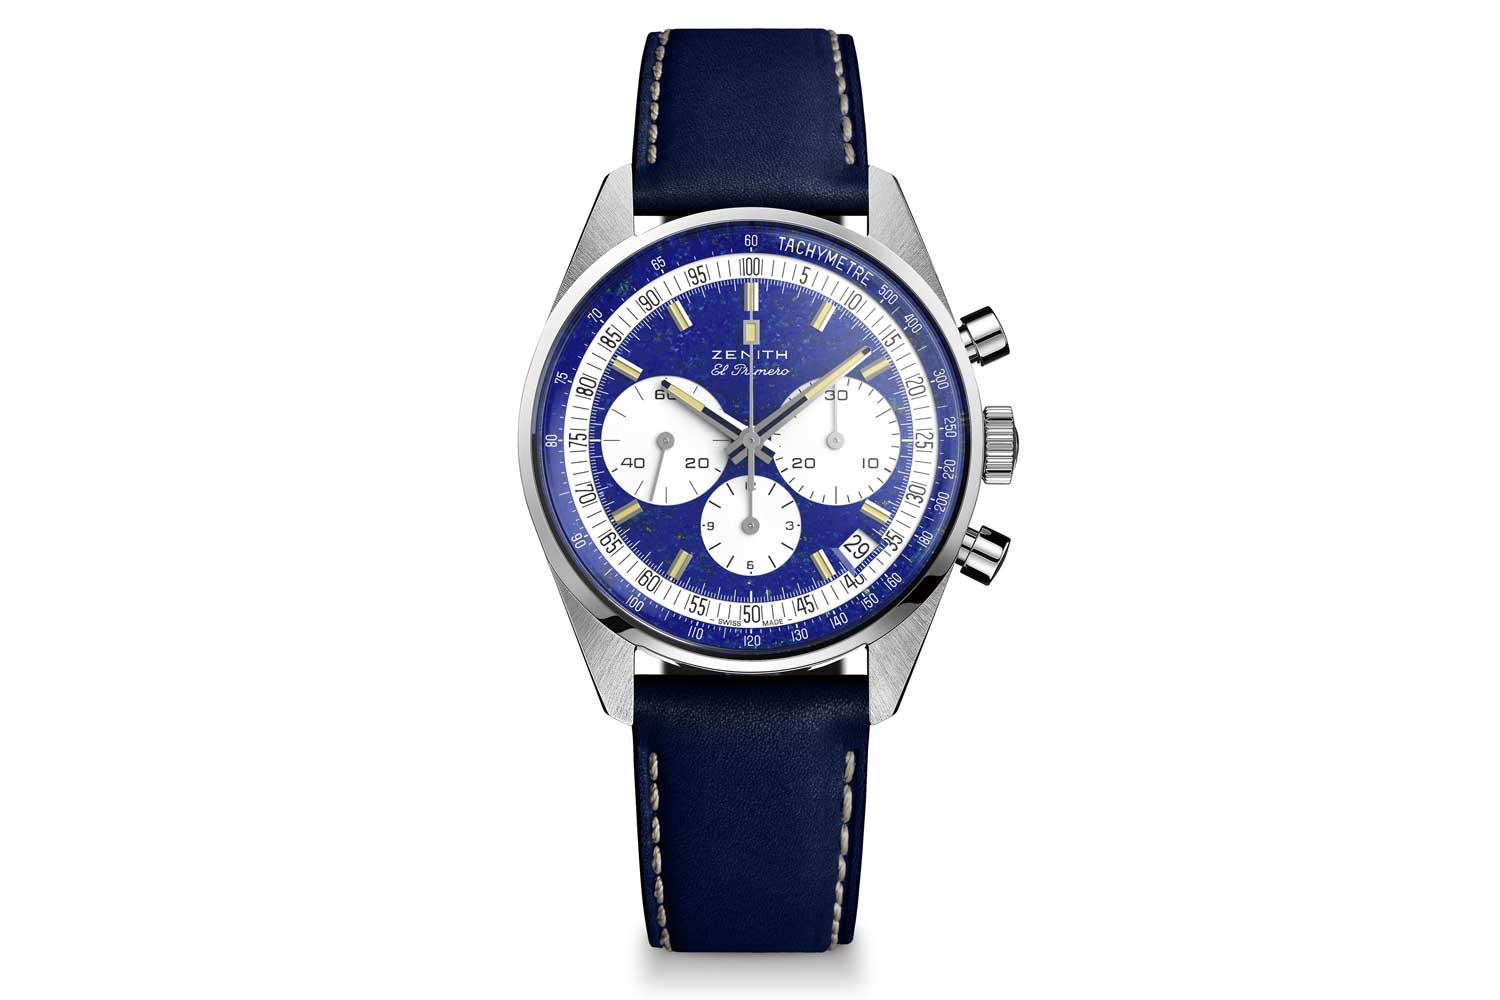 Zenith El Primero designed in collaboration with Phillips